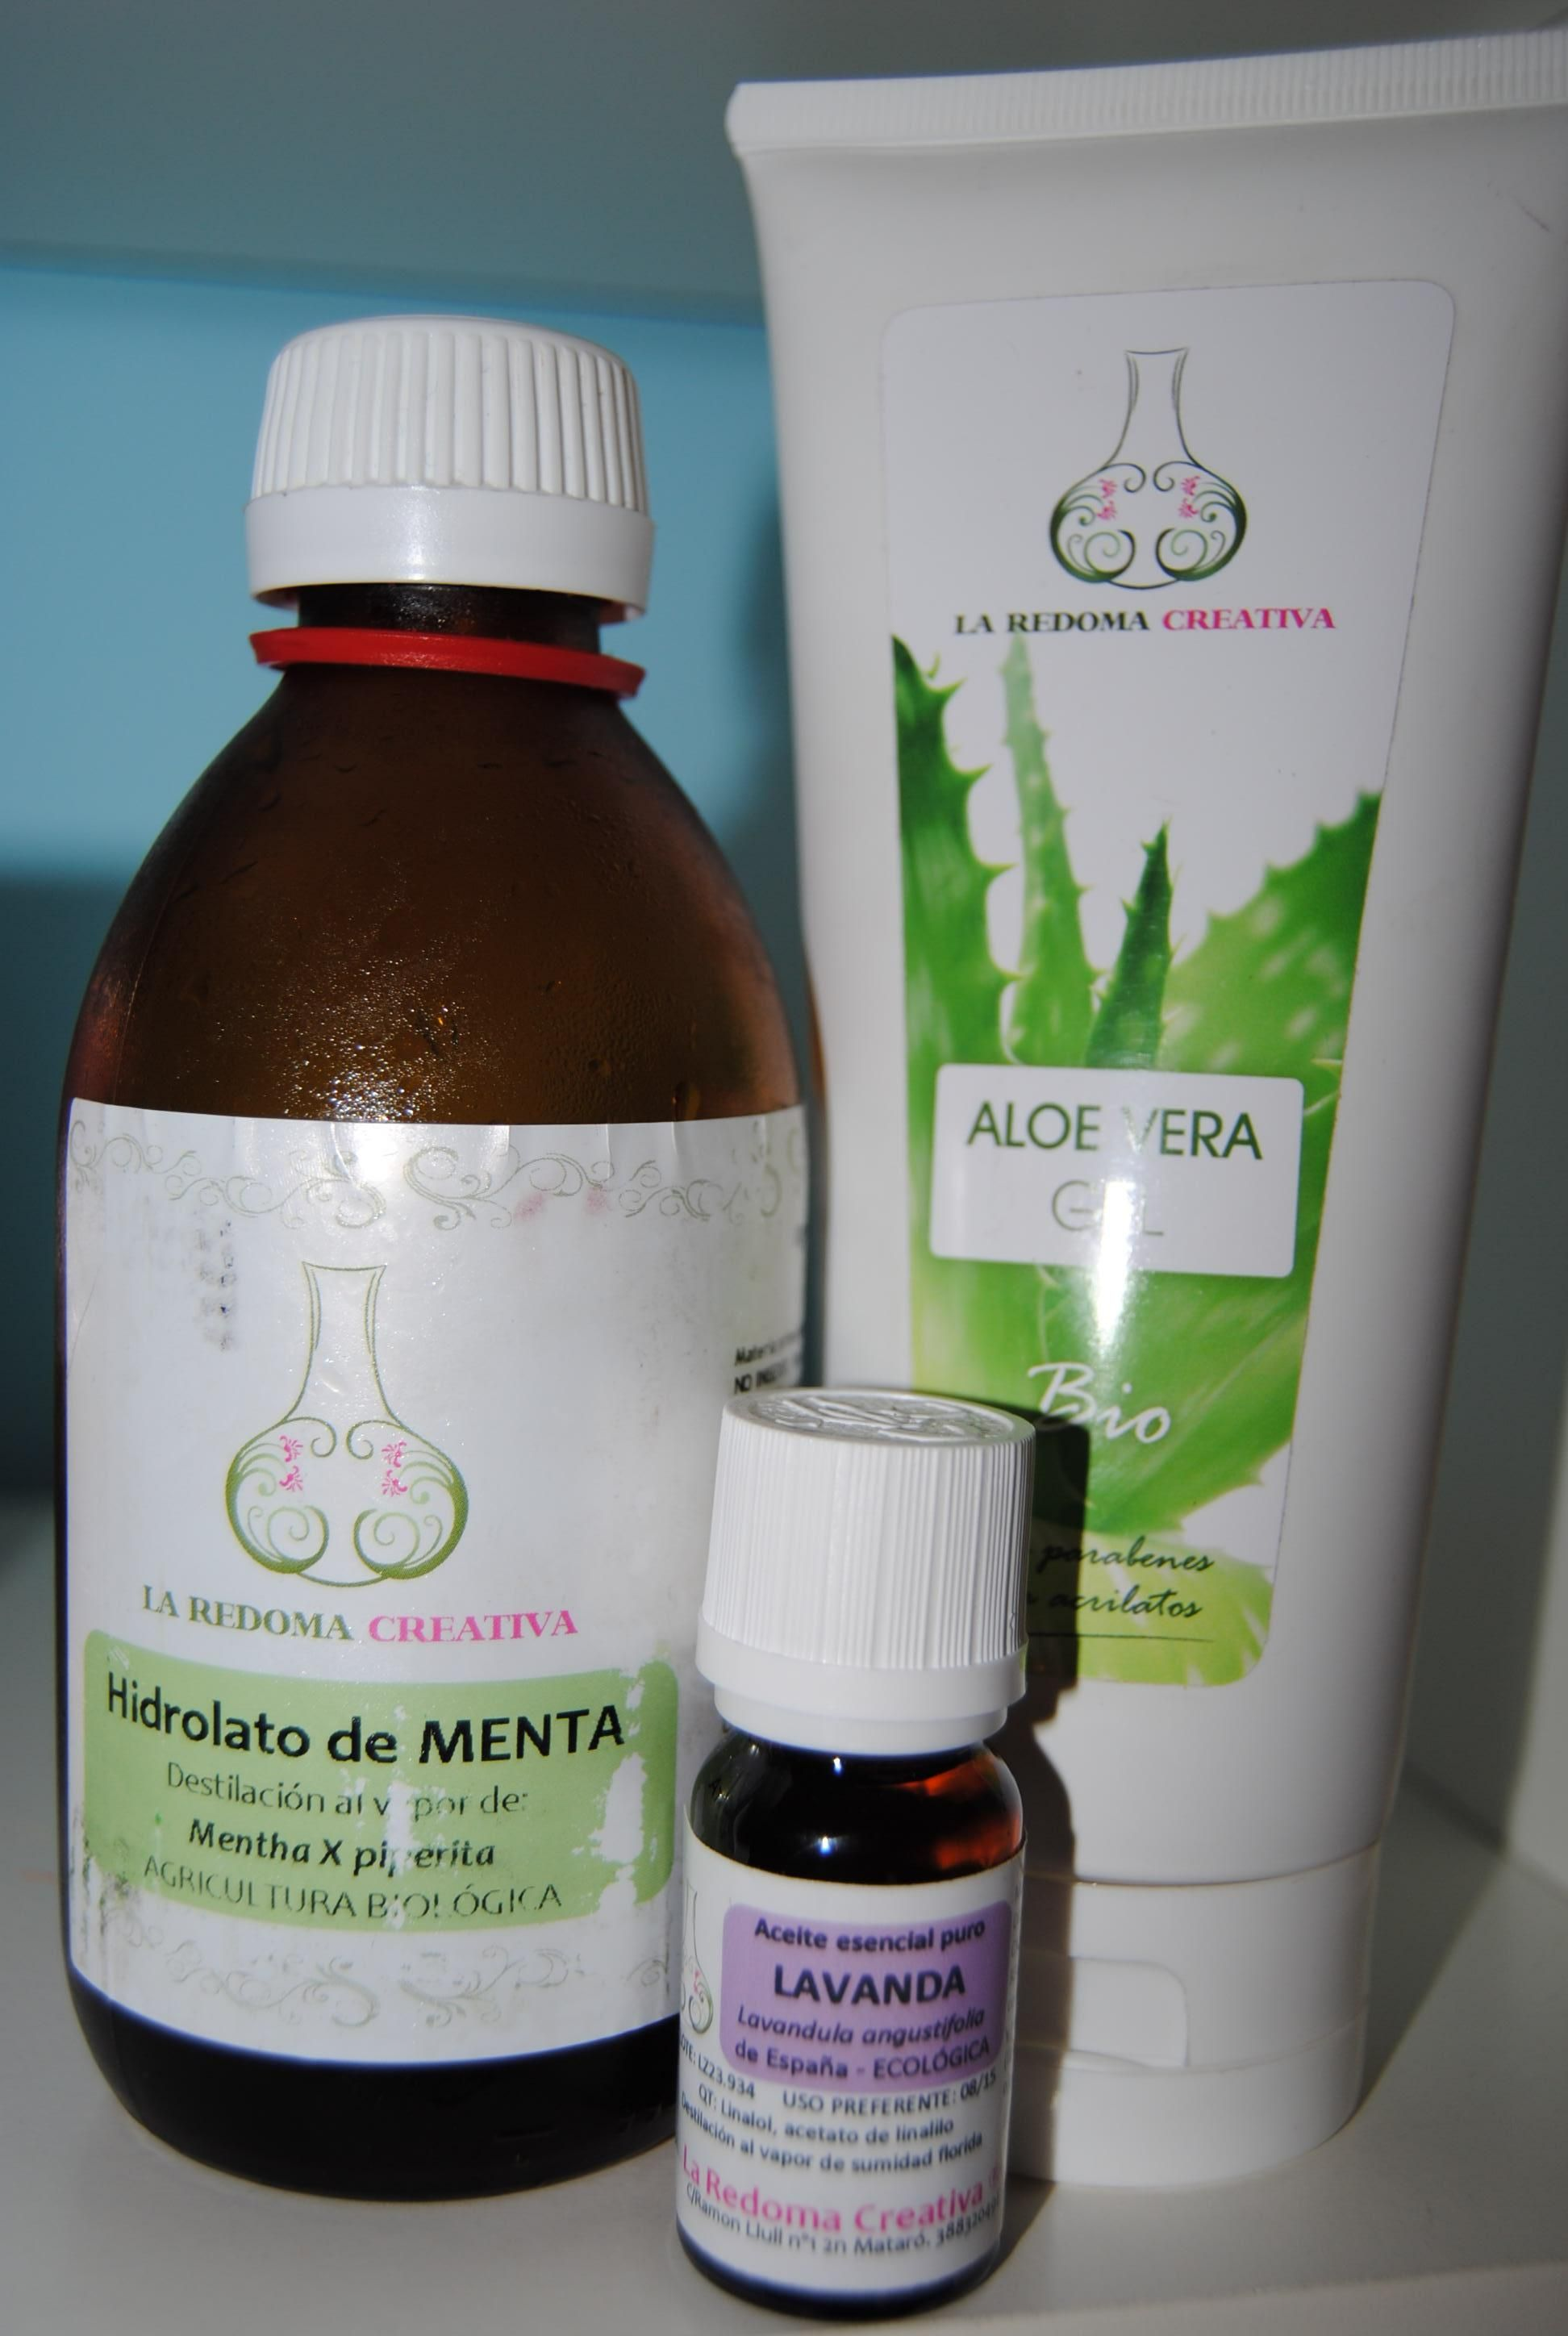 Aloe Vera Essen Kit Para Elaborar Un After Sun Rápido Y Efectivo Gel De Aloe Vera